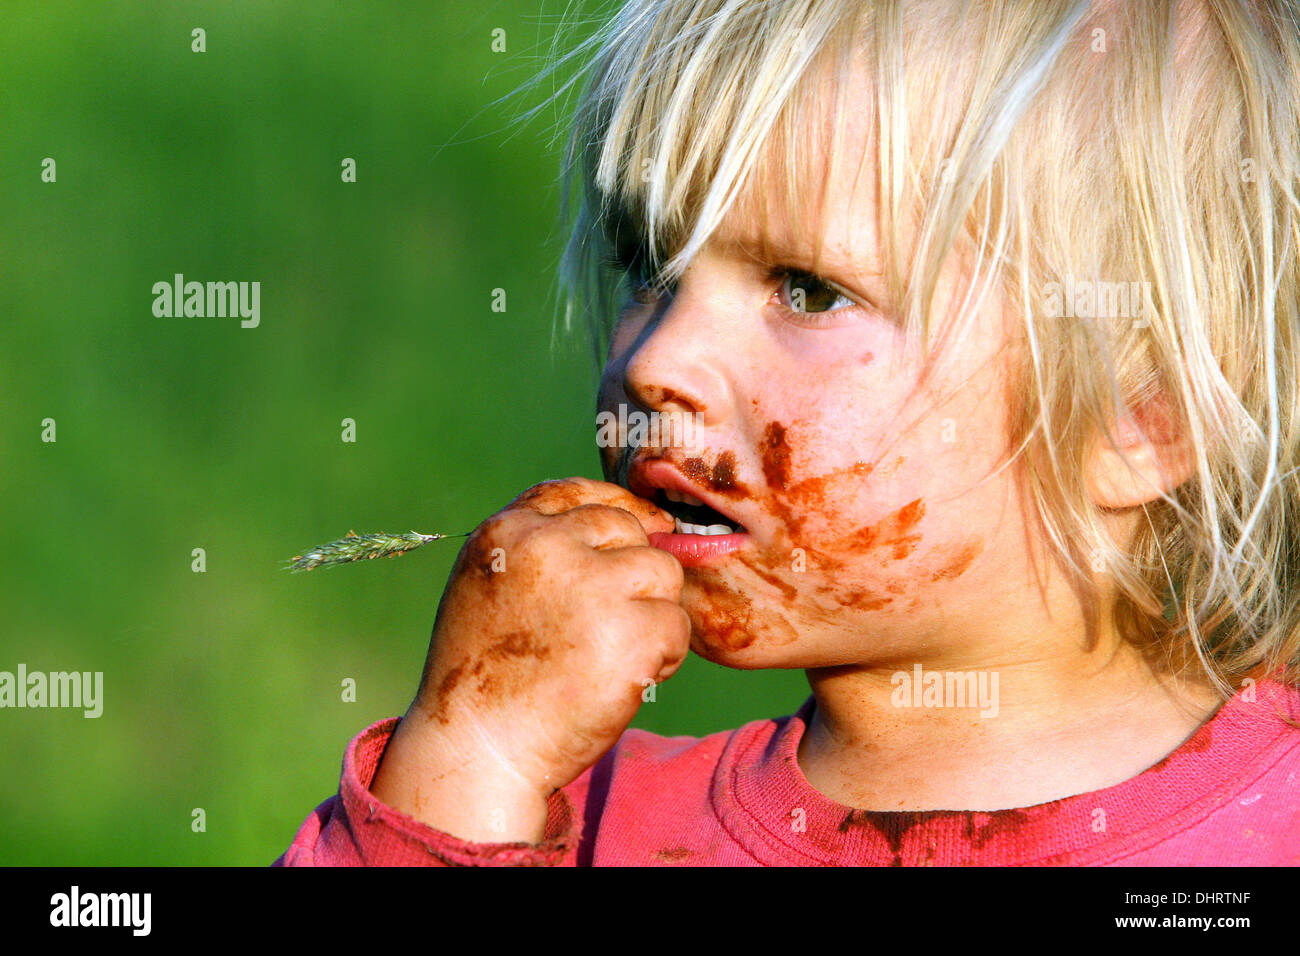 A smeared chocolate face, a little blond boy - Stock Image